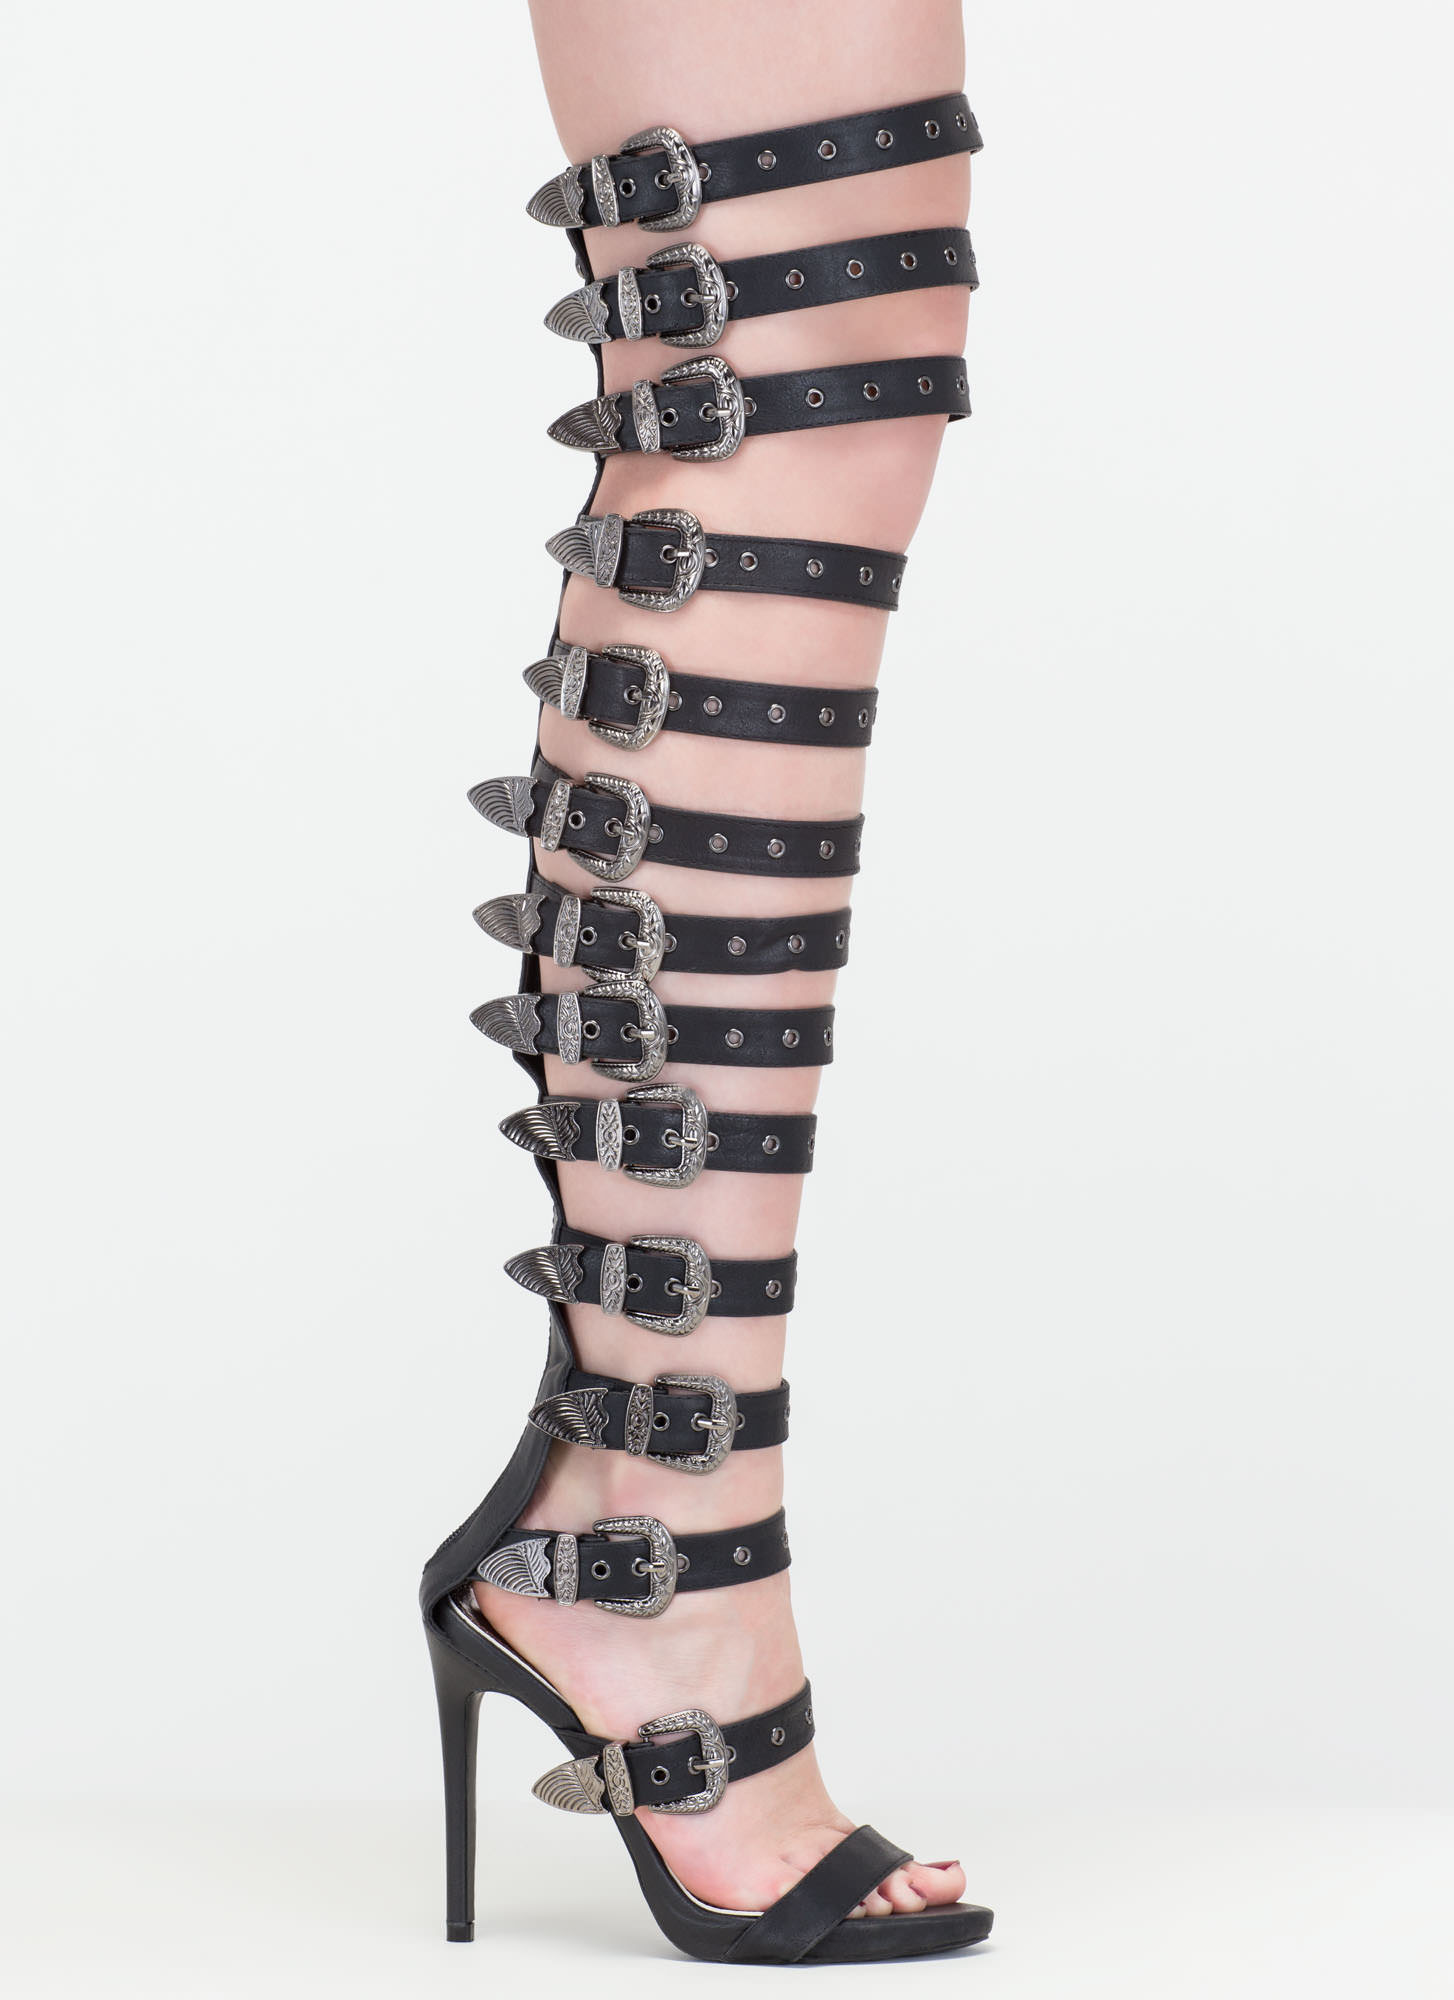 Out West Strappy Buckled Gladiator Heels BLACK